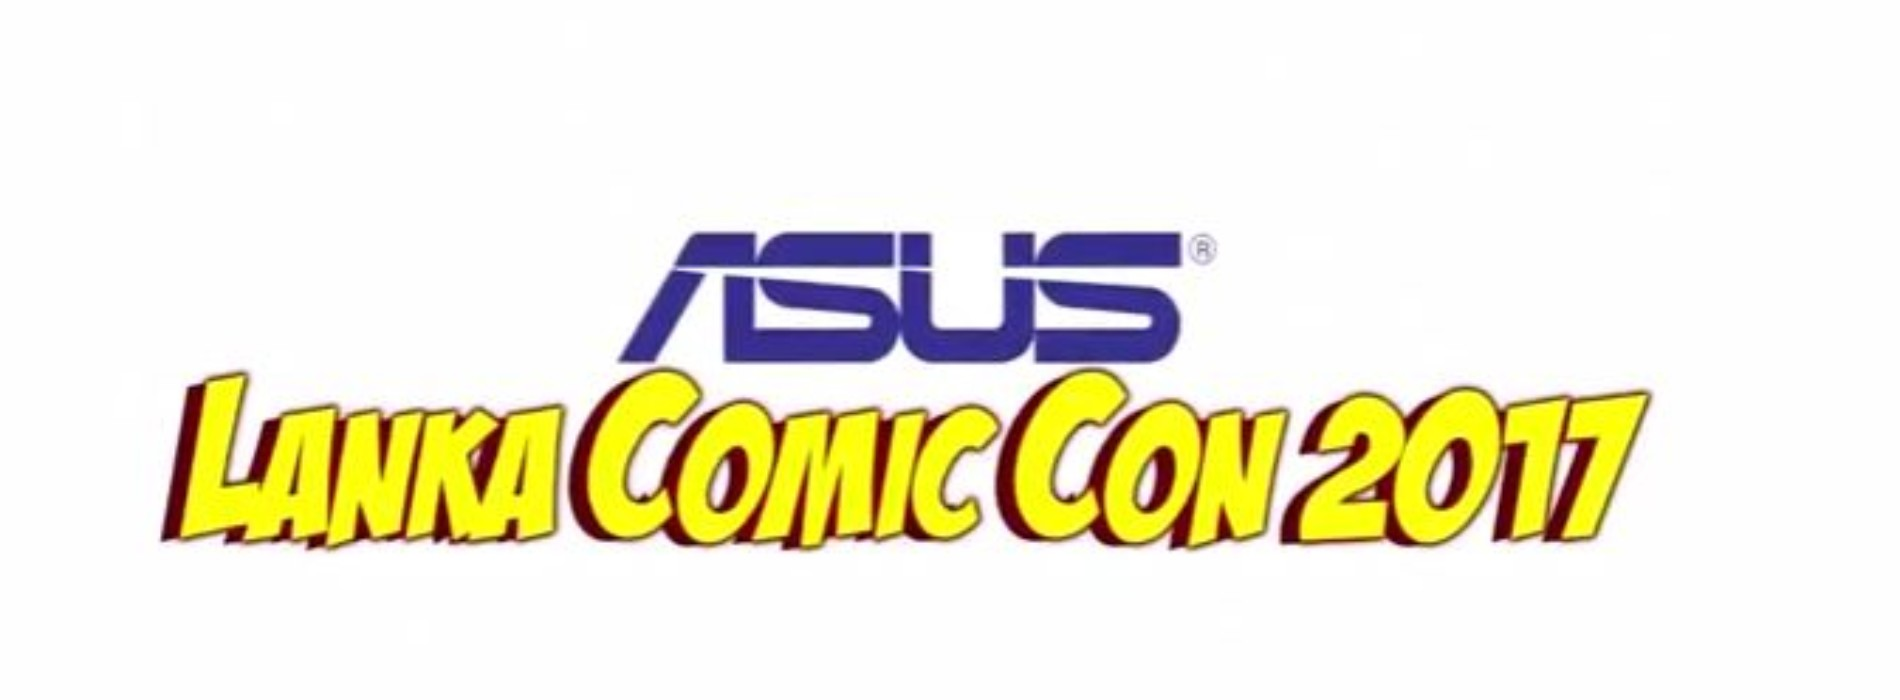 All You Need To Know About The Asus Lanka Comic Con This Year!